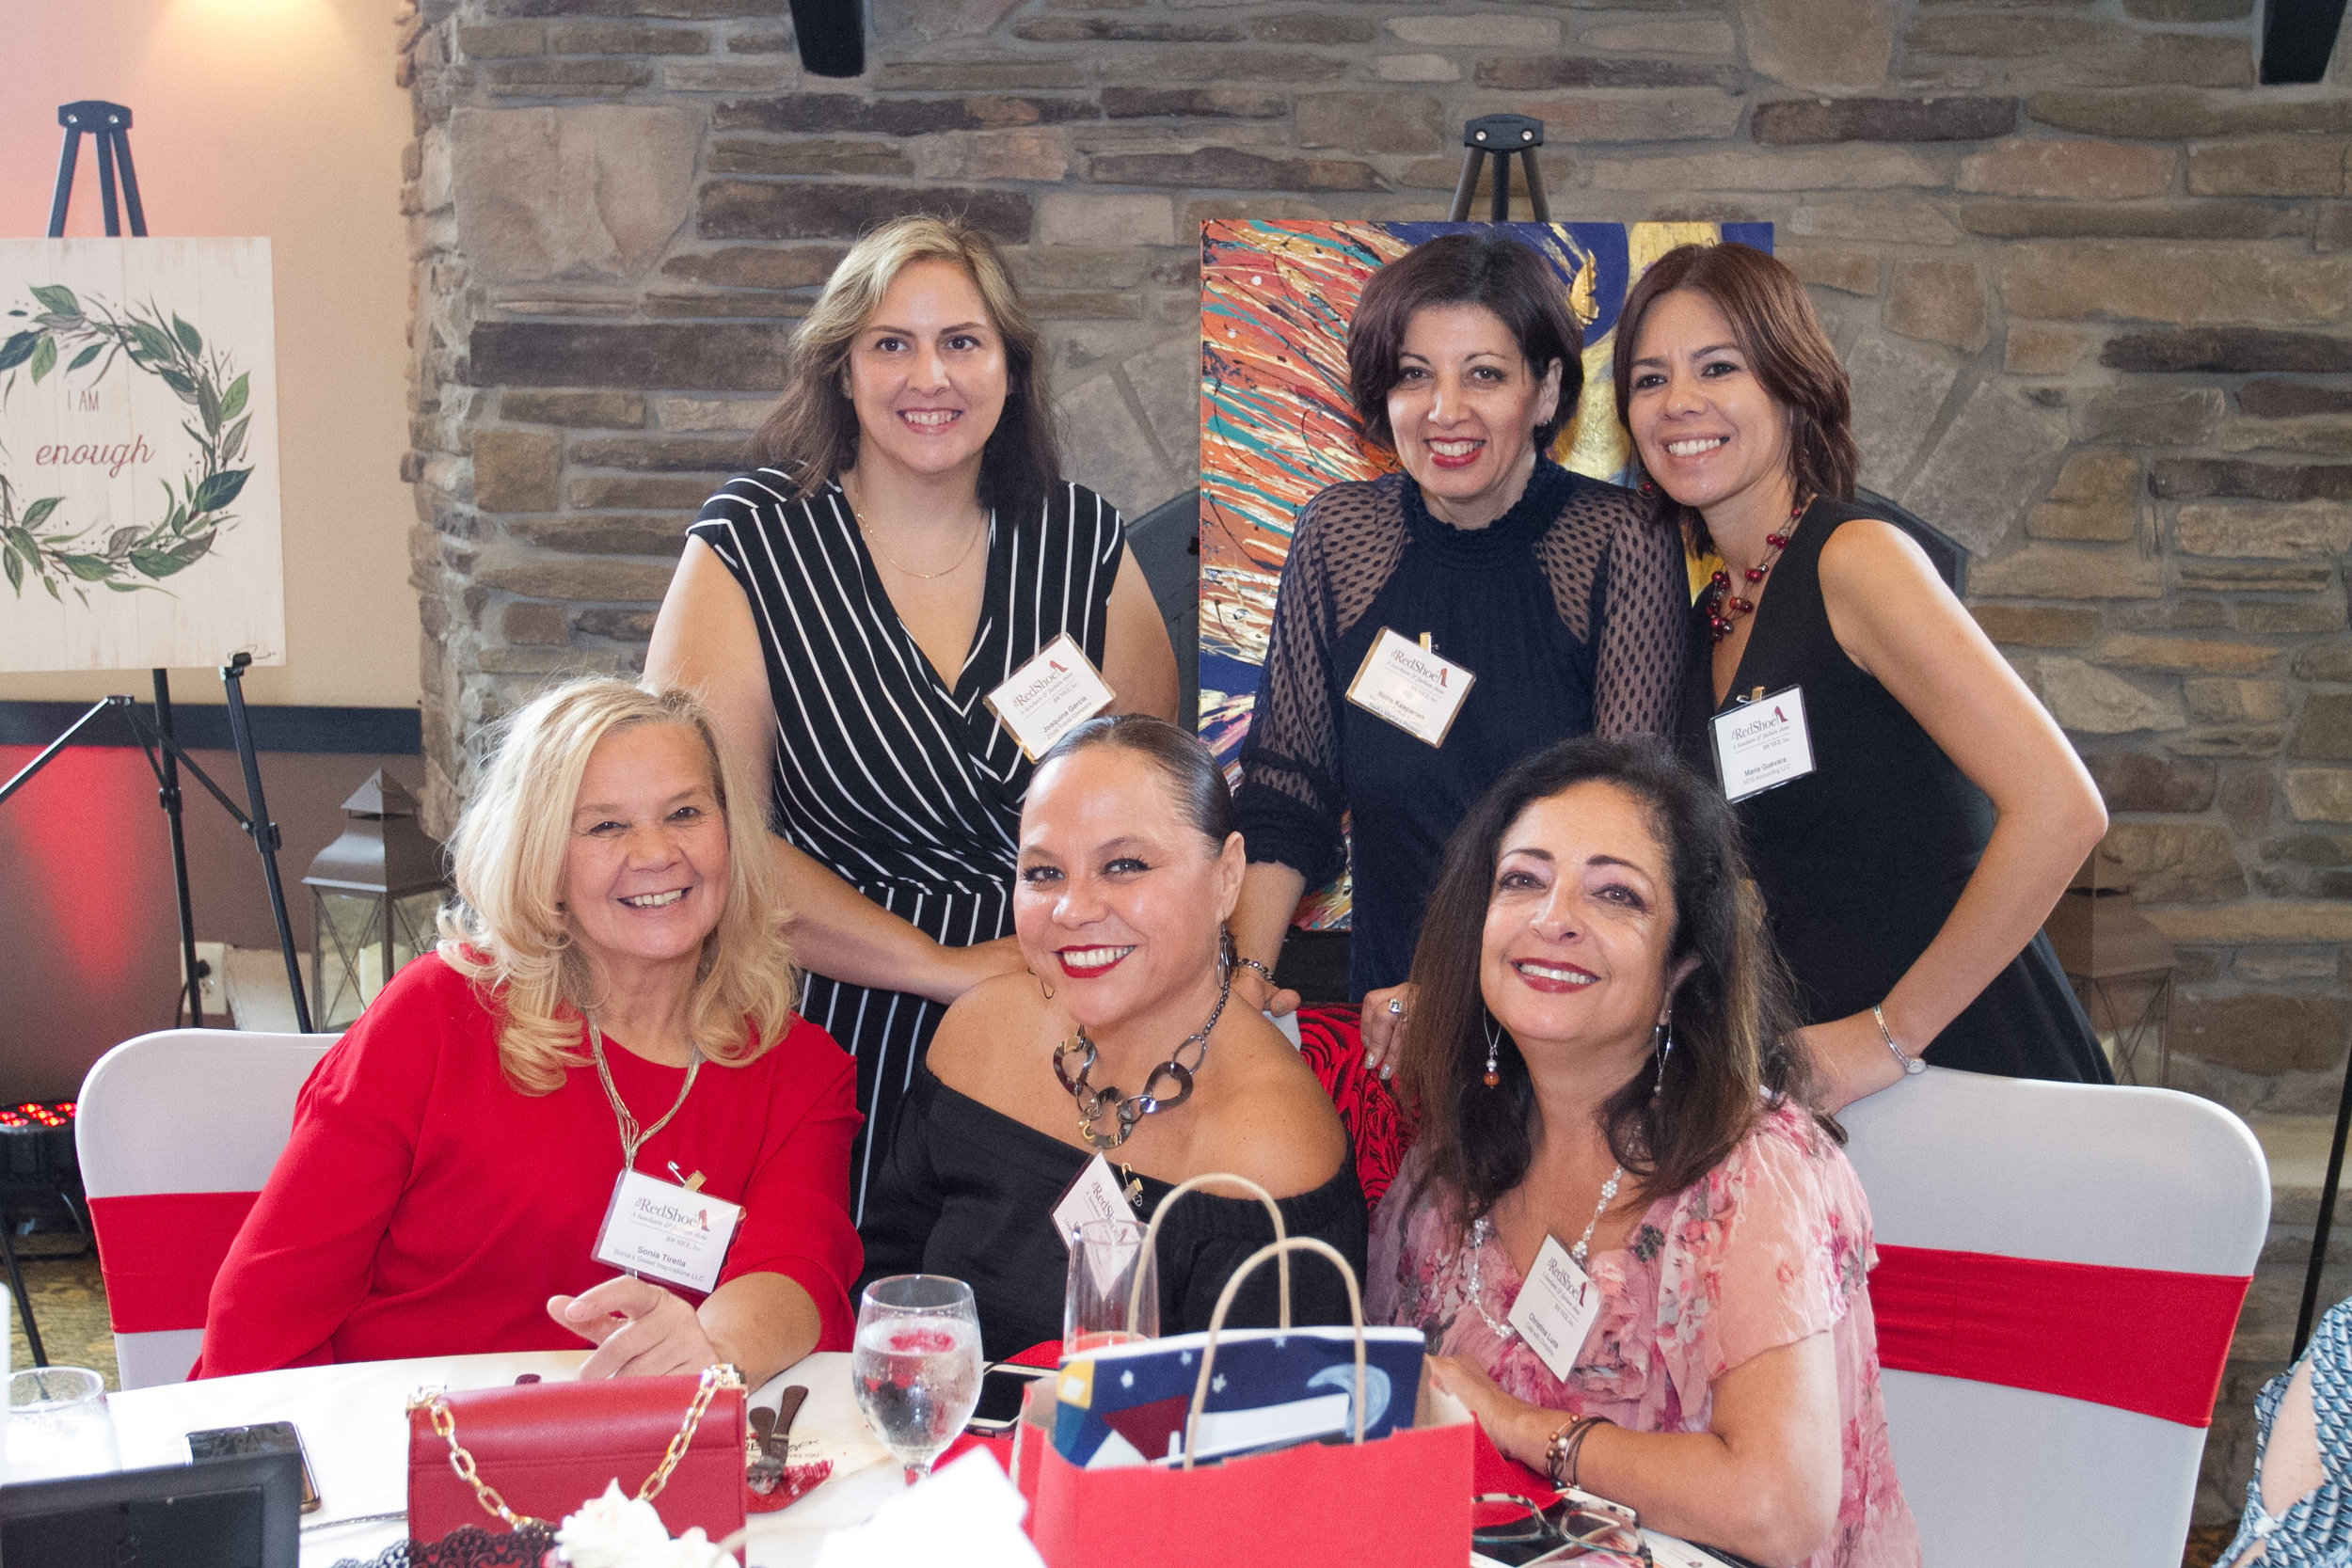 LightMaster-Studios-BWNice-Monroe-Chapter-Red-Shoes-Event-Camelback-lodge-2018-9852.jpg